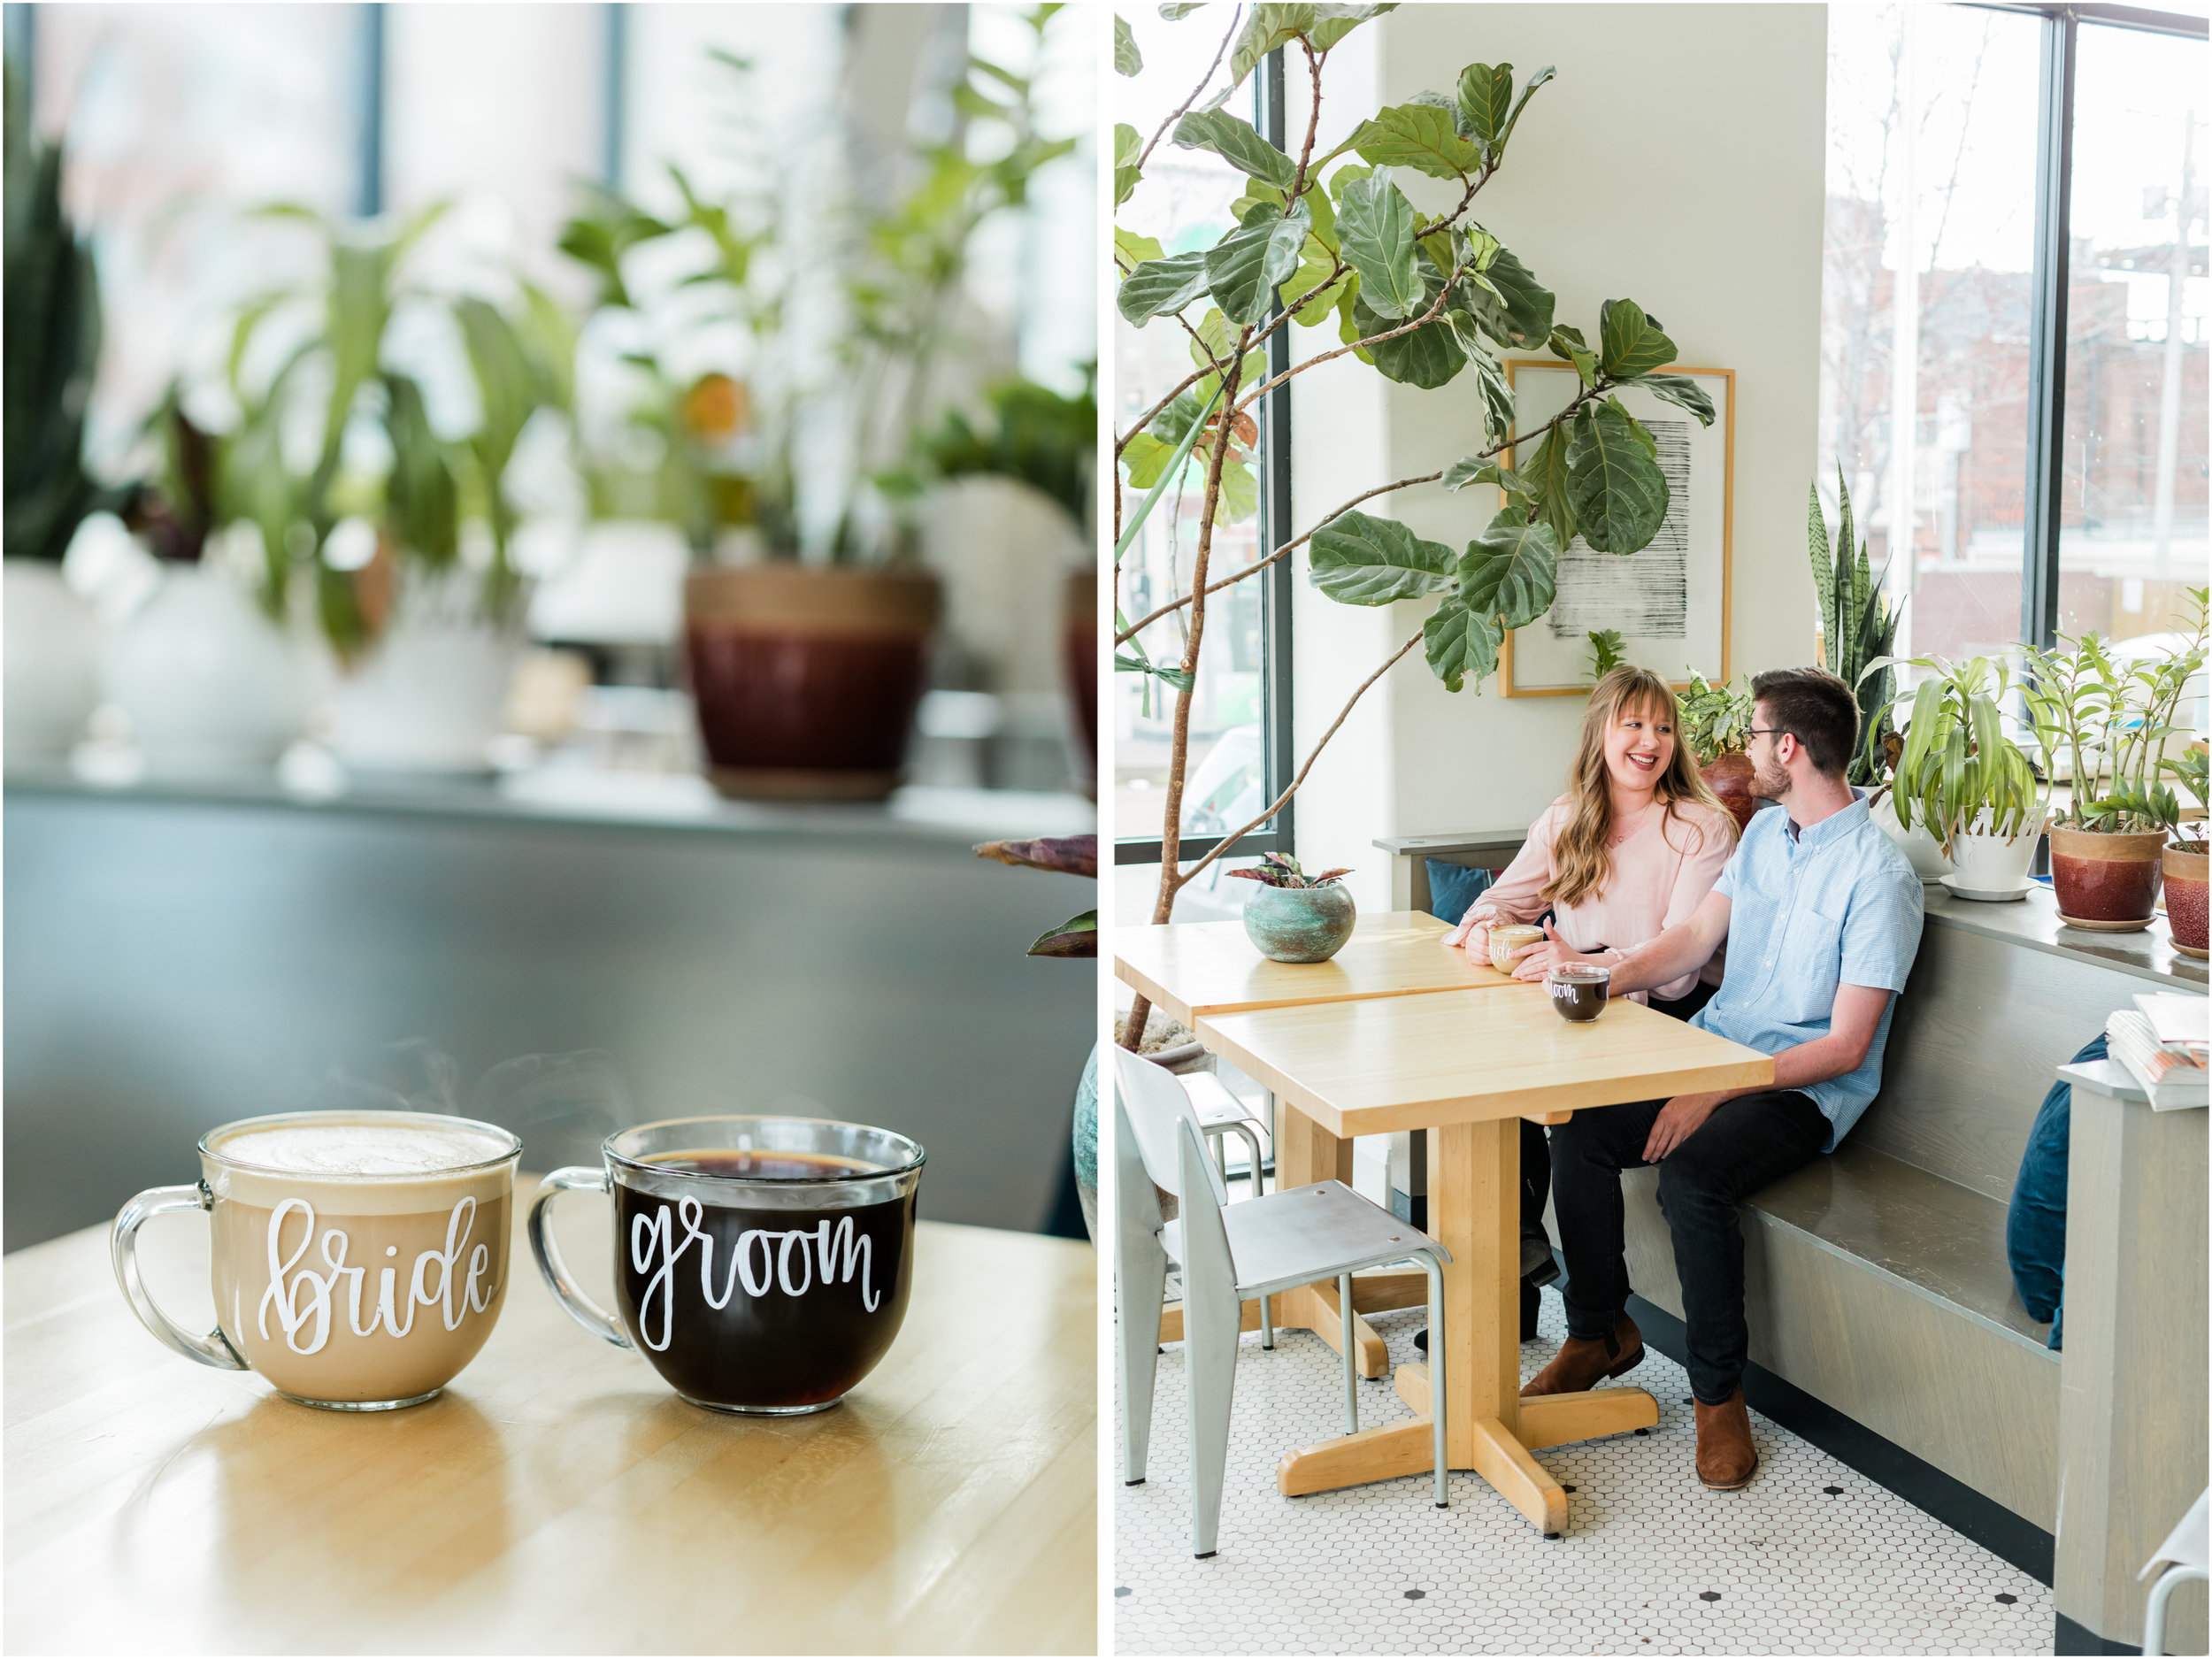 Messenger Coffee Kansas CIty Engagement Photos 11.jpg